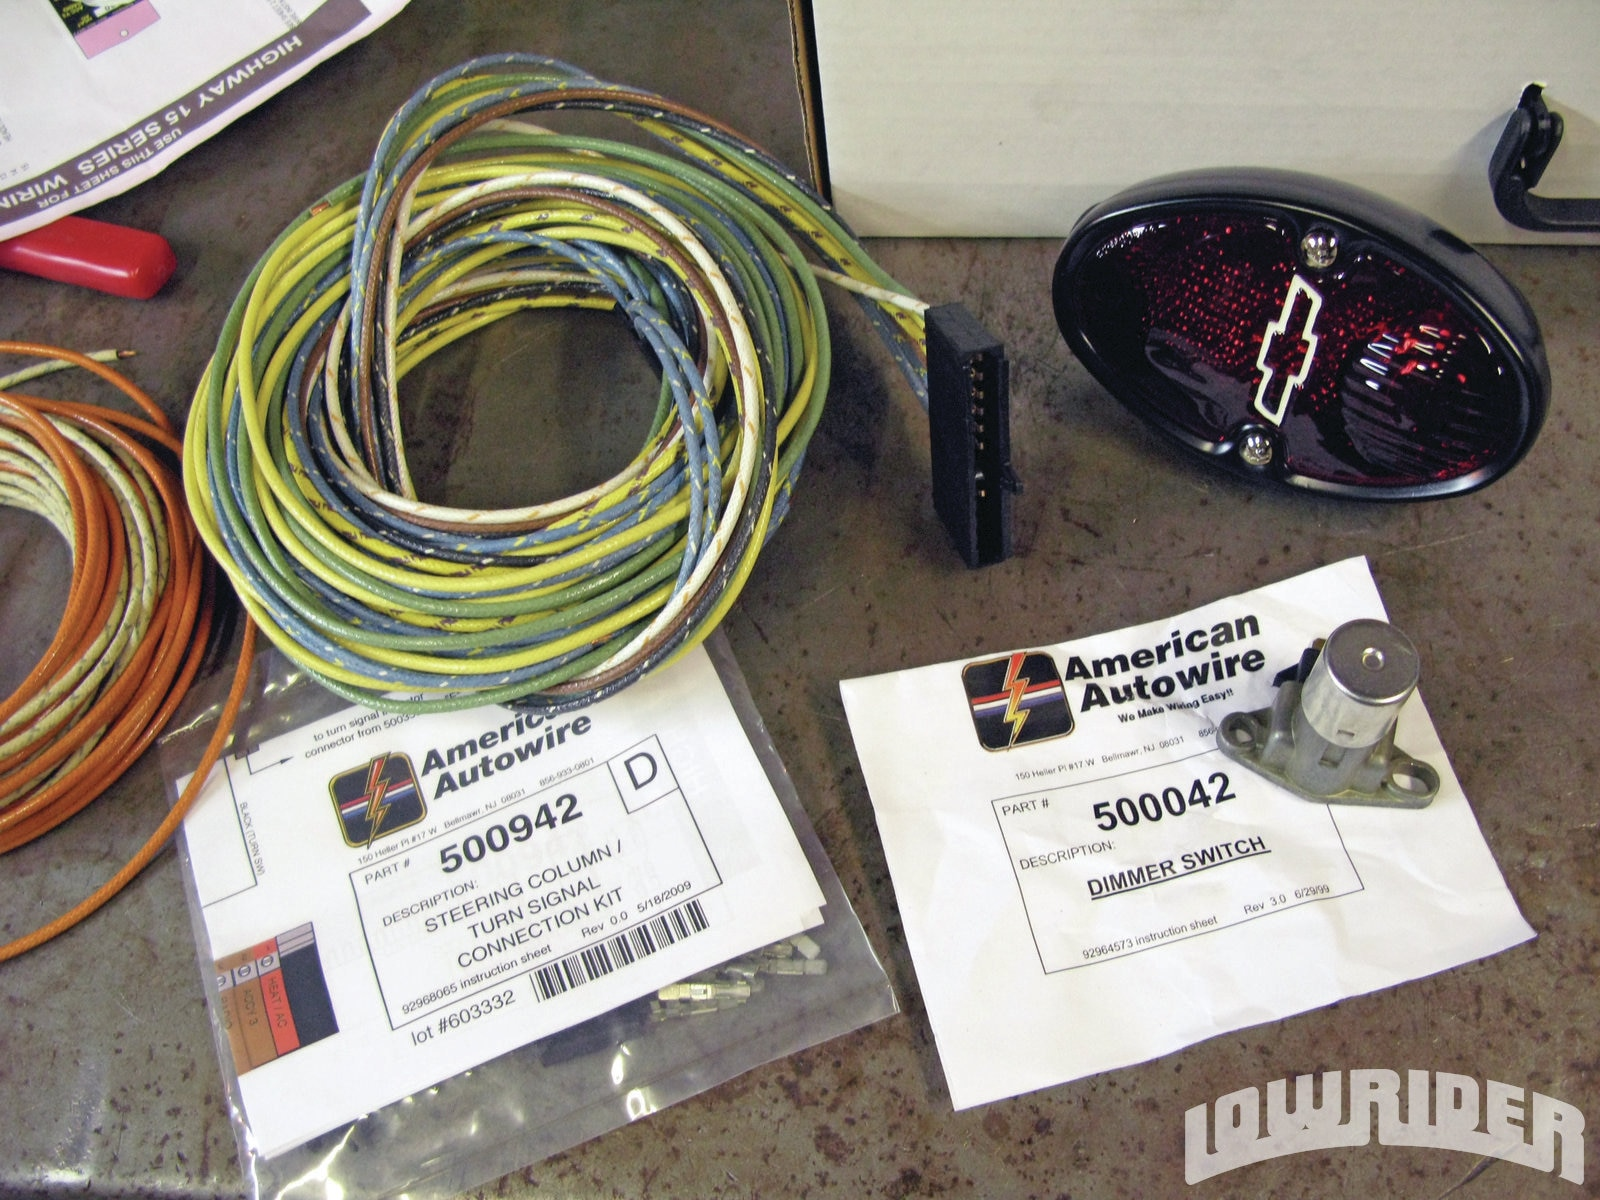 American Autowire Highway 15 Nostalgia Wiring Kit Lowrider Magazine Electric Brake Size Instructions 25 33